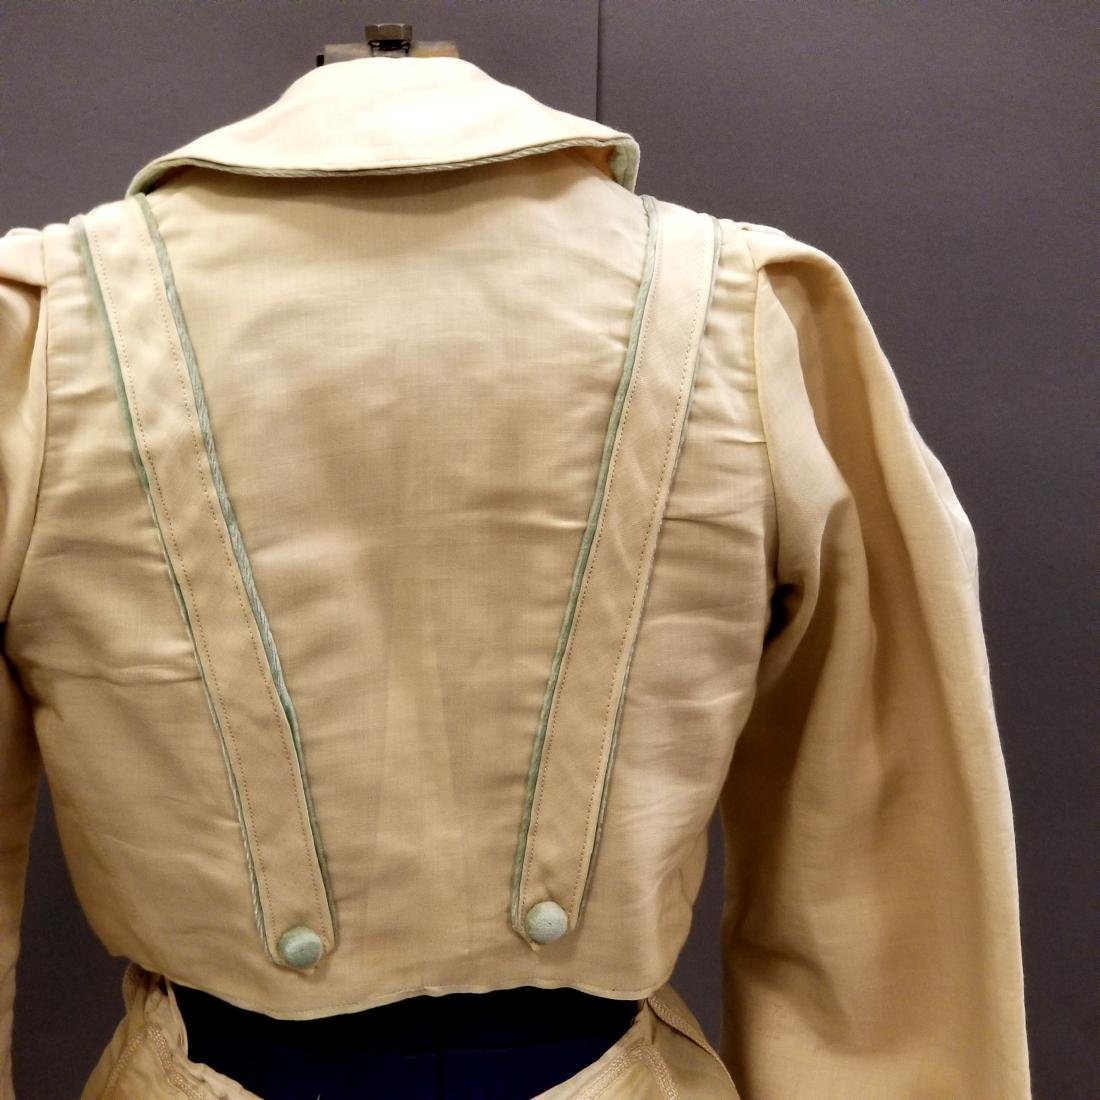 Bolero Jacket and Pleated Skirt - 6